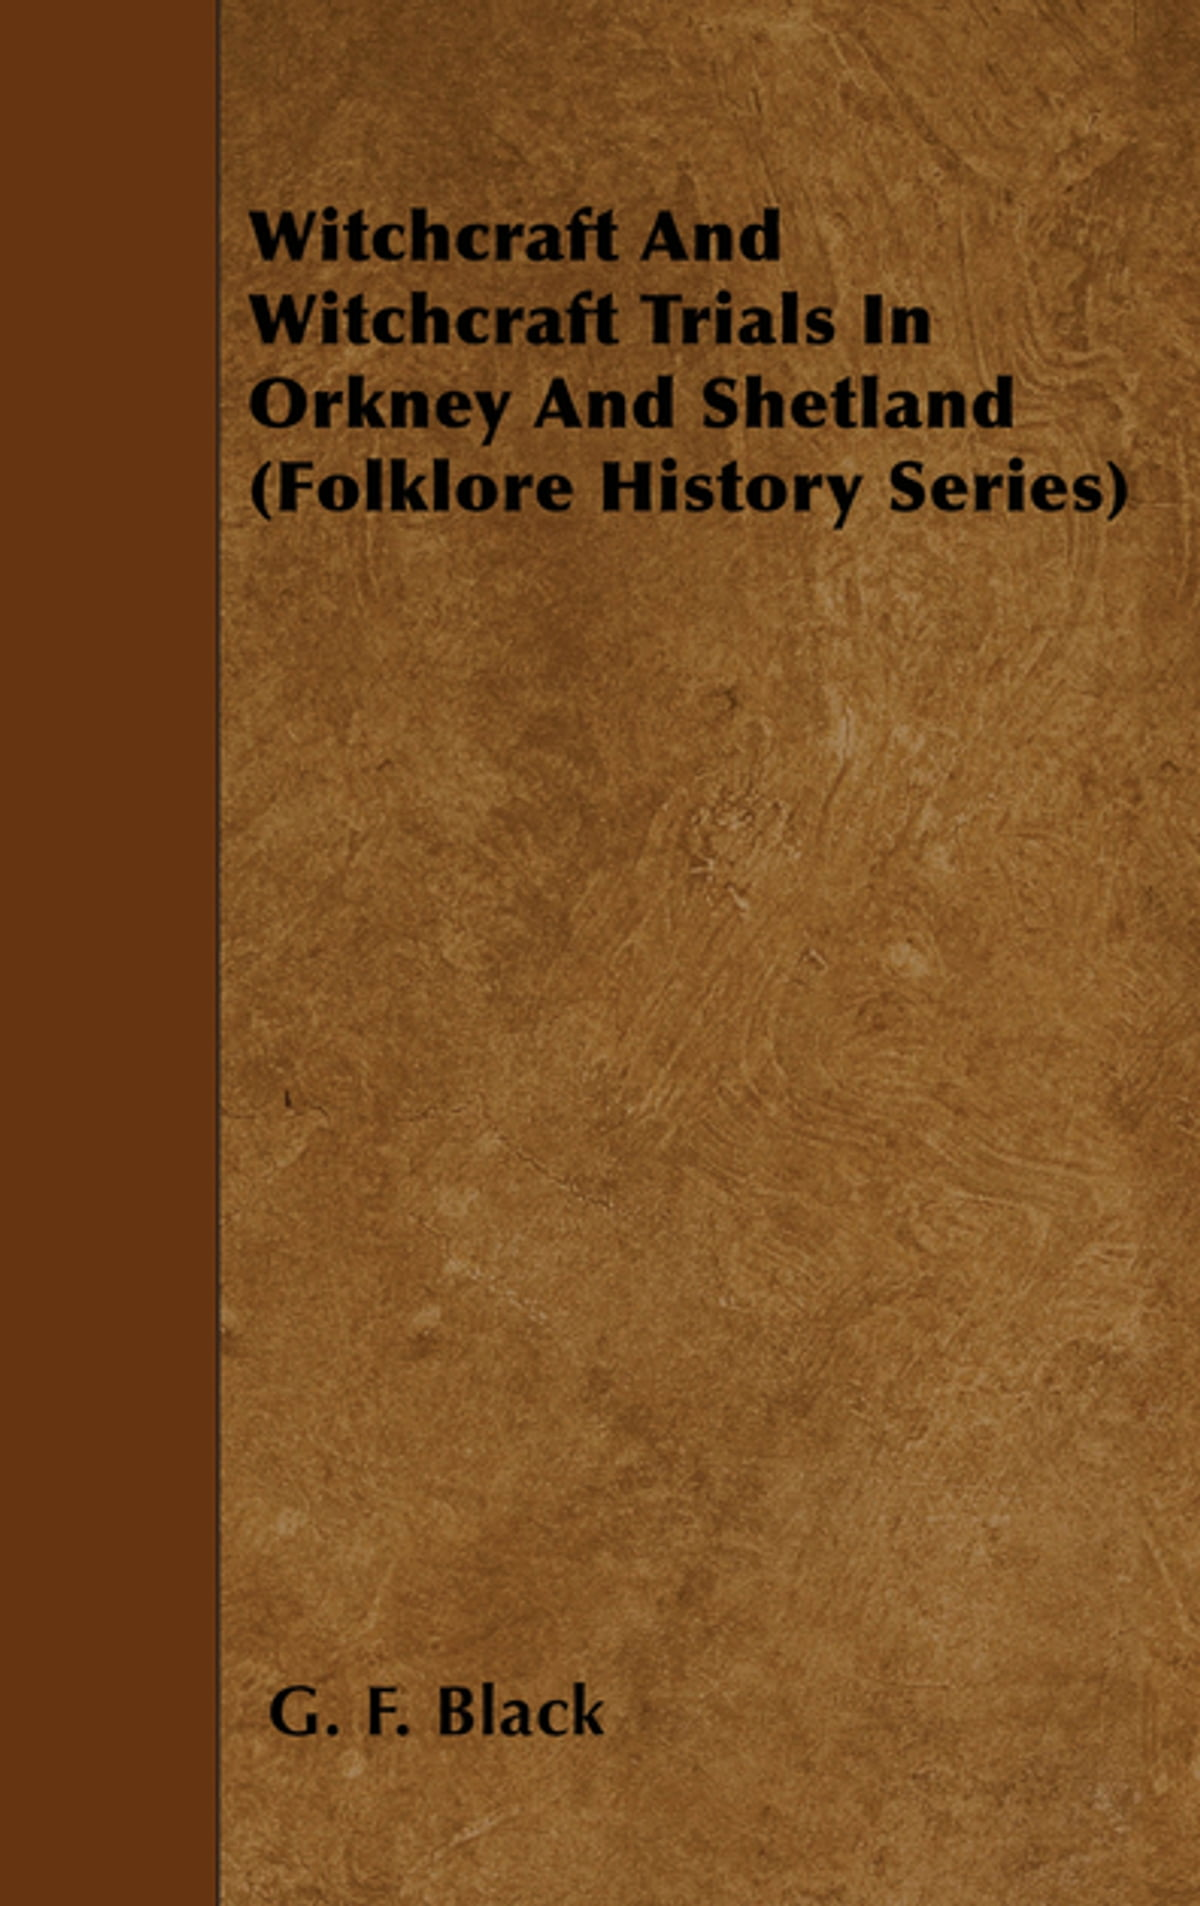 Witchcraft And Witchcraft Trials In Orkney And Shetland (Folklore History  Series) ebook by G  F  Black - Rakuten Kobo